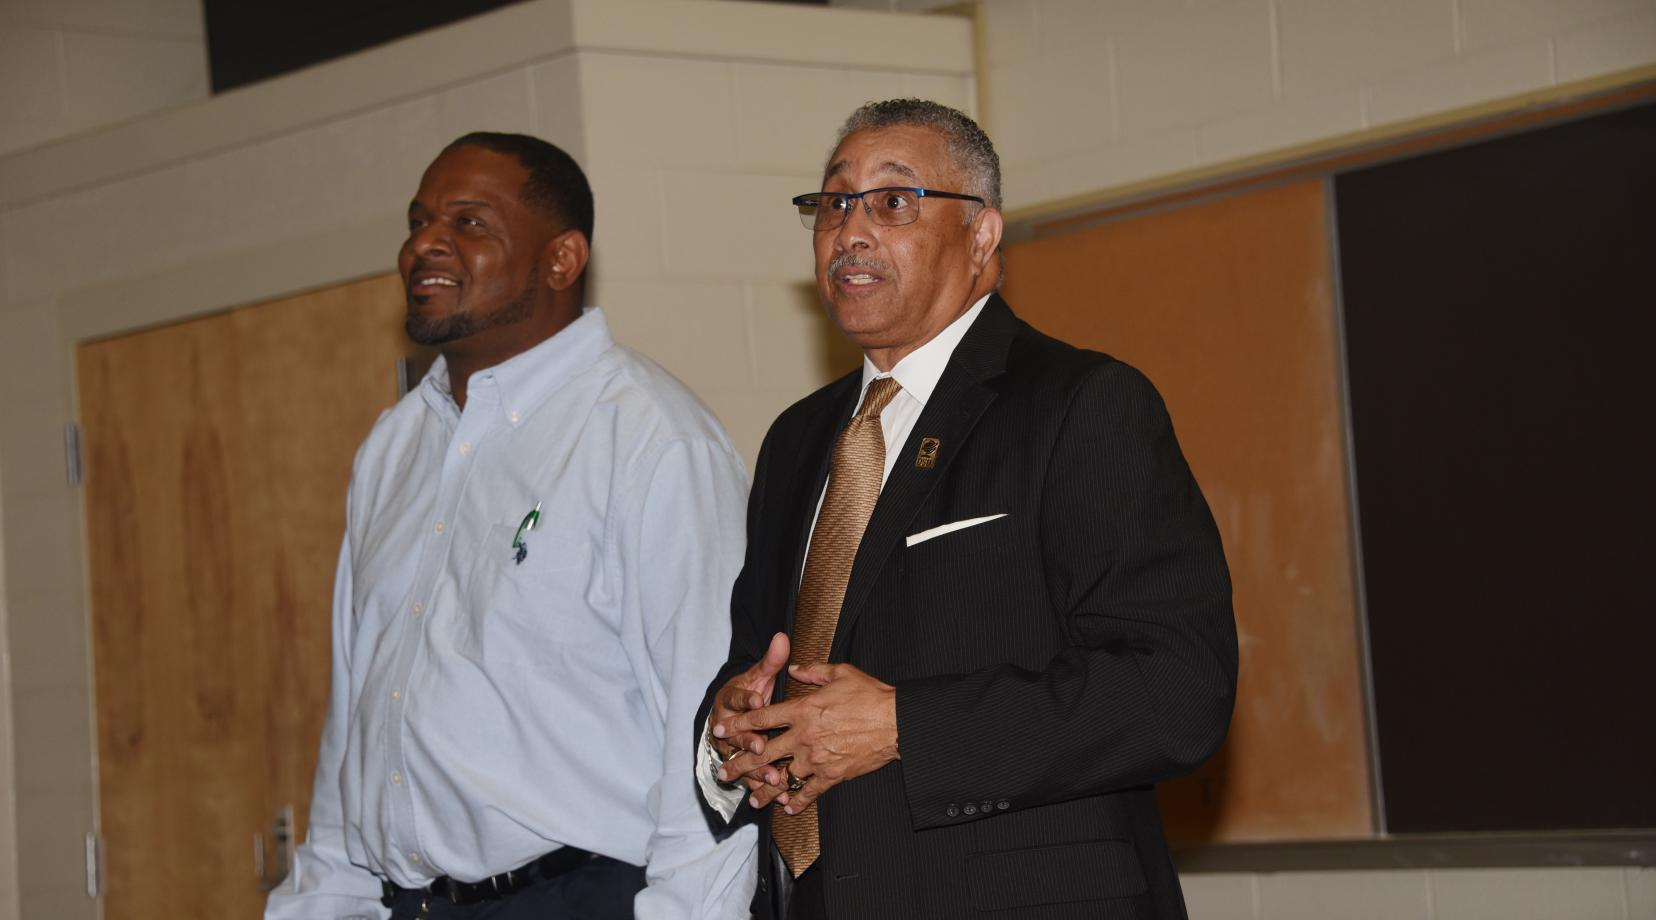 <p>Herman Woods, the new Associate Vice President of Facilities Management, Planning and Construction, introduces himself to the custodial staff as Bernard Pratt, Senior Director of Plant Maintenance stands alongside.</p>